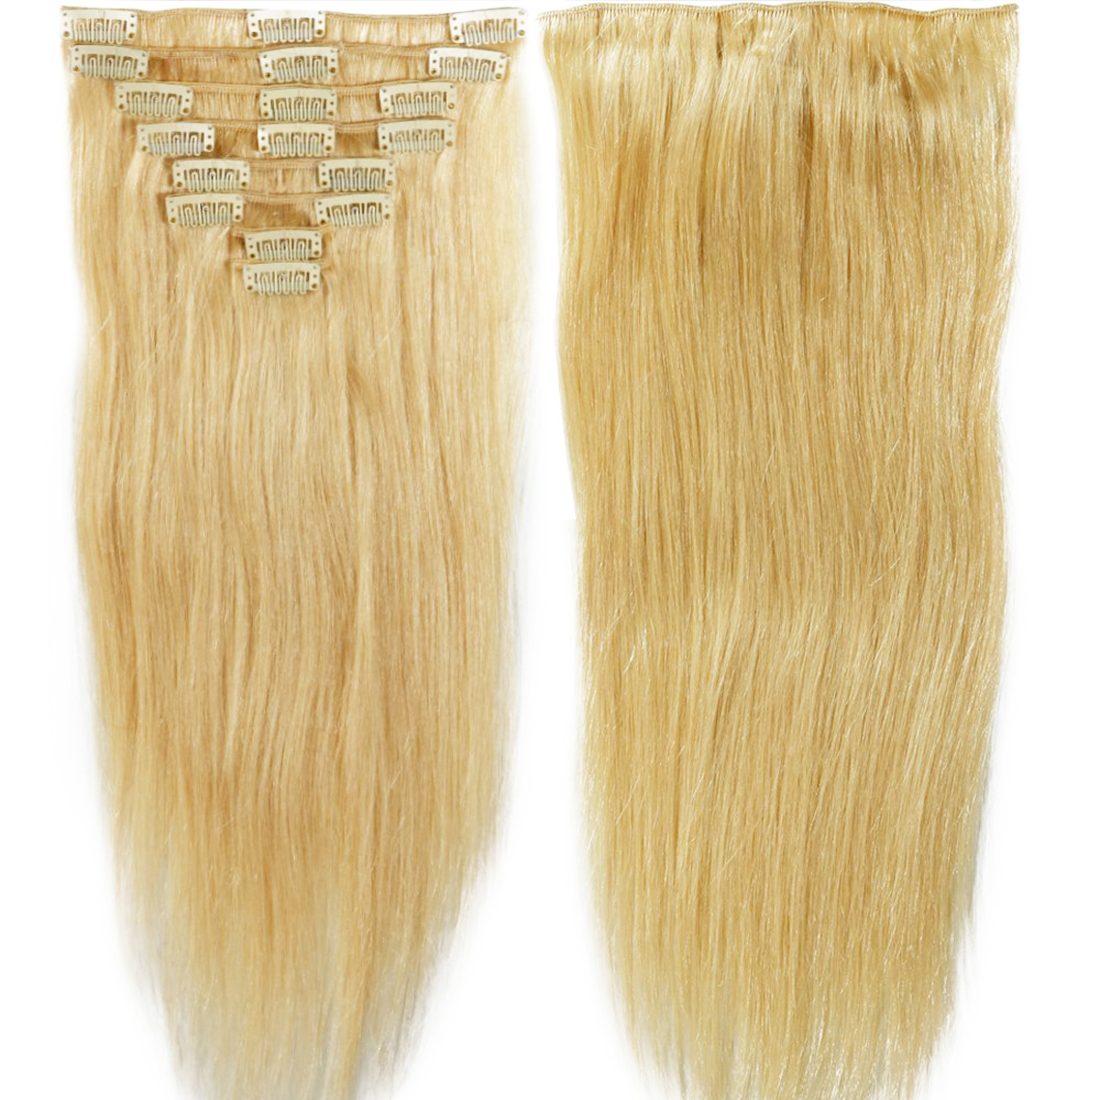 Excellent 100 real cheap thick clip in remy human hair extensions excellent 100 real cheap thick clip in remy pmusecretfo Choice Image